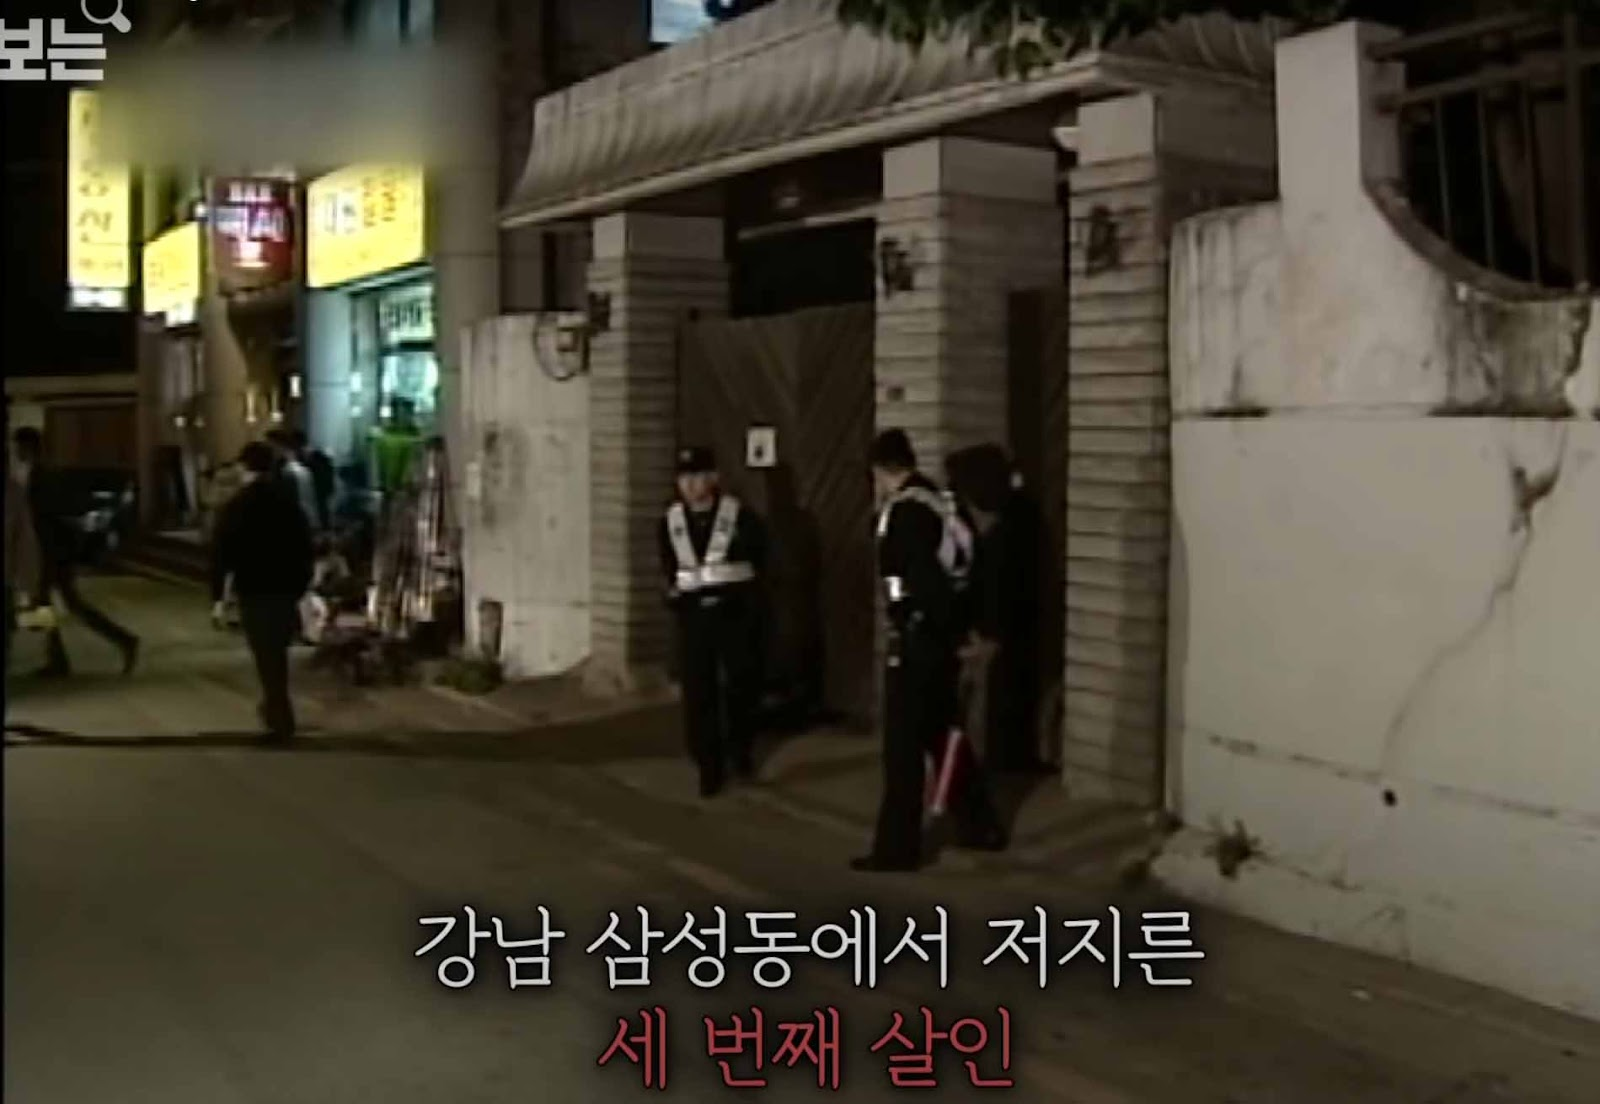 News footage during investigation